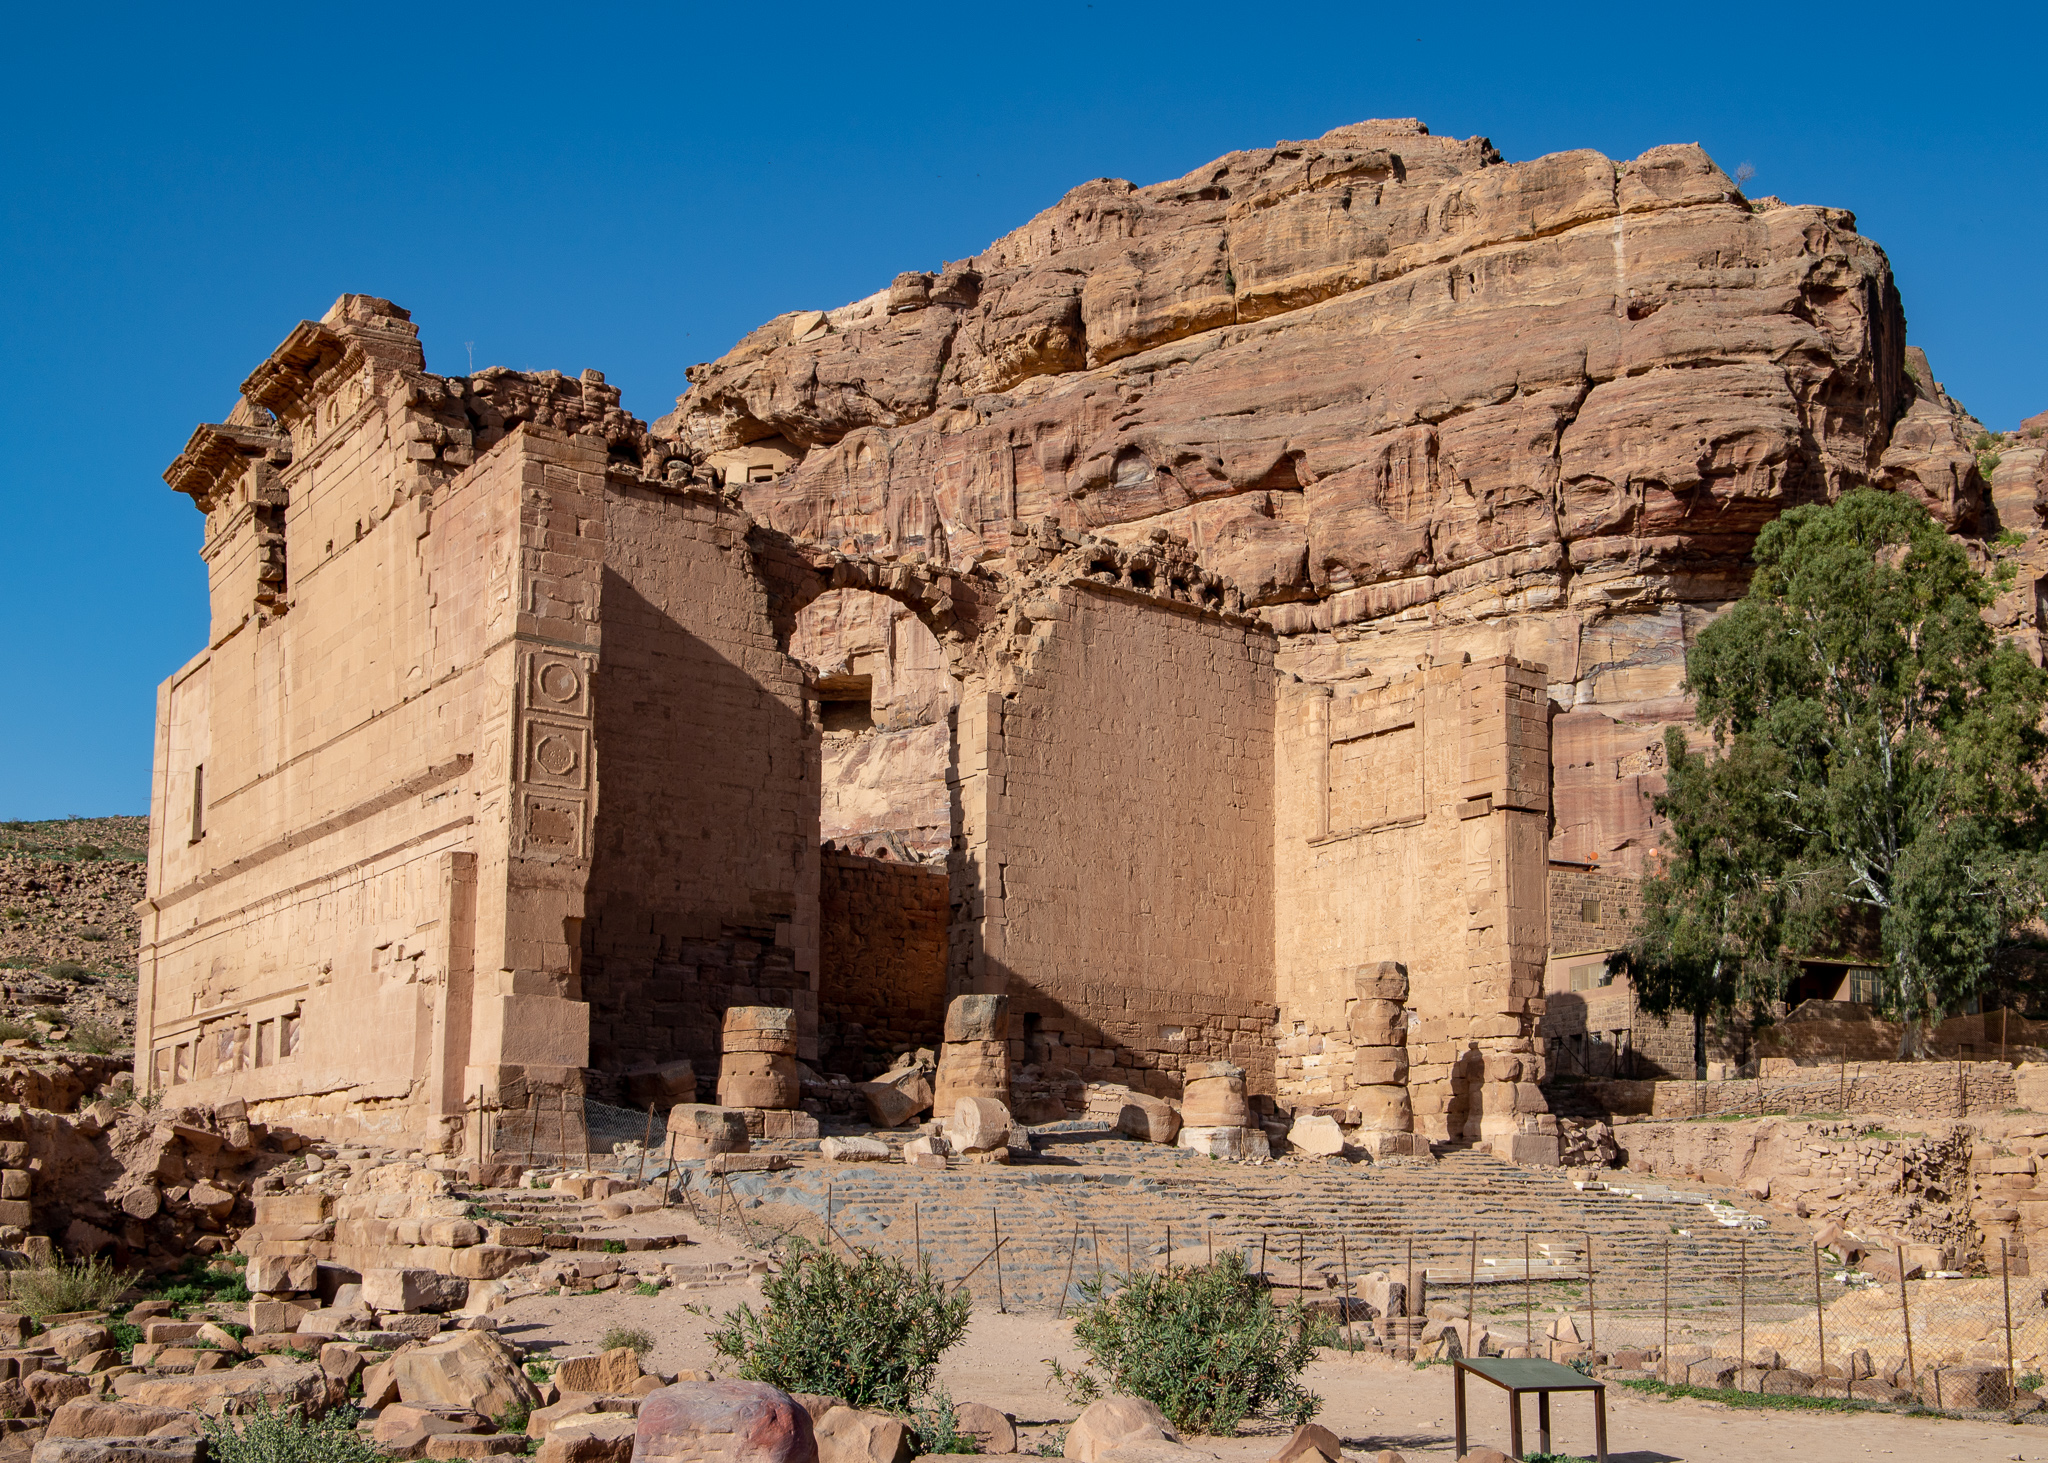 Seemingly dwarfed by the mountain behind, the Temple of Dushares still has the largest front of any building in Petra